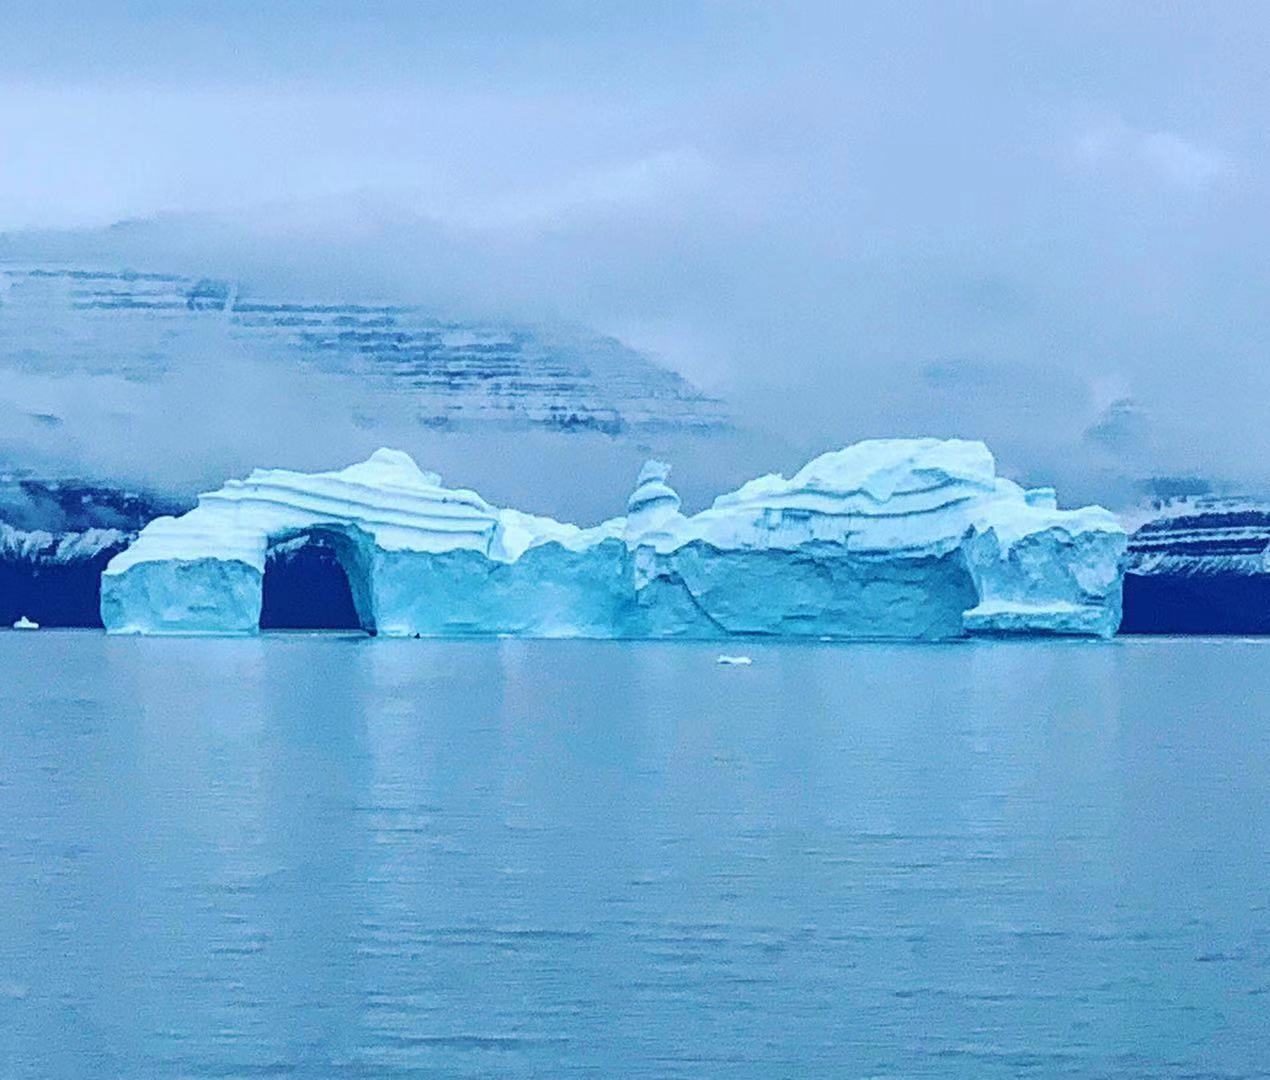 An iceberg we saw on our Greenland cruise.